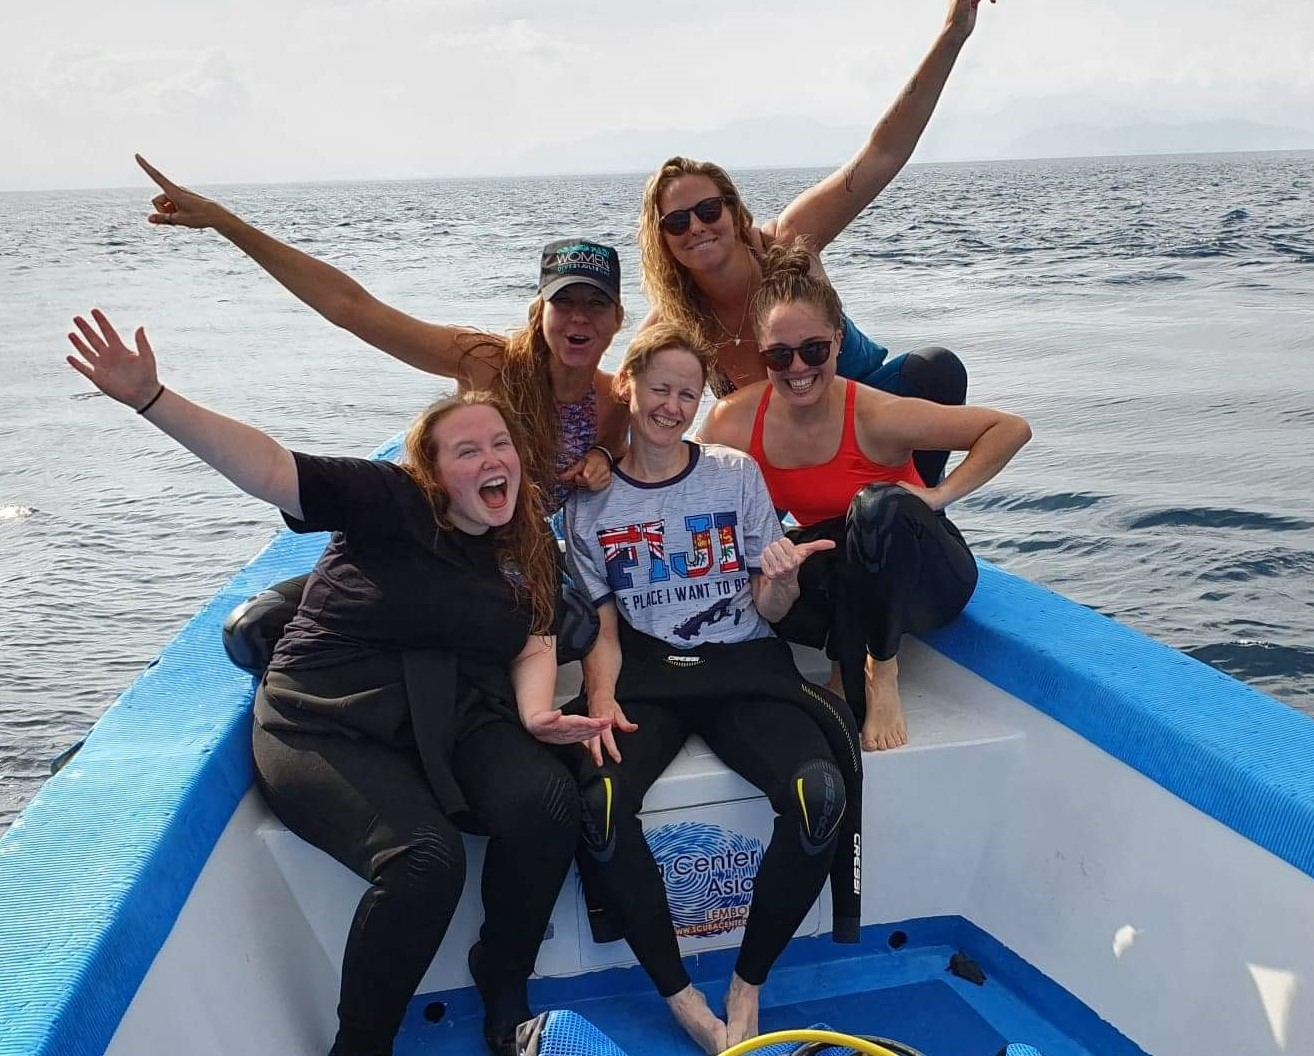 Diving is fun! Female divers often find boat diving easier than shore diving as gear is not optimized for their bodies